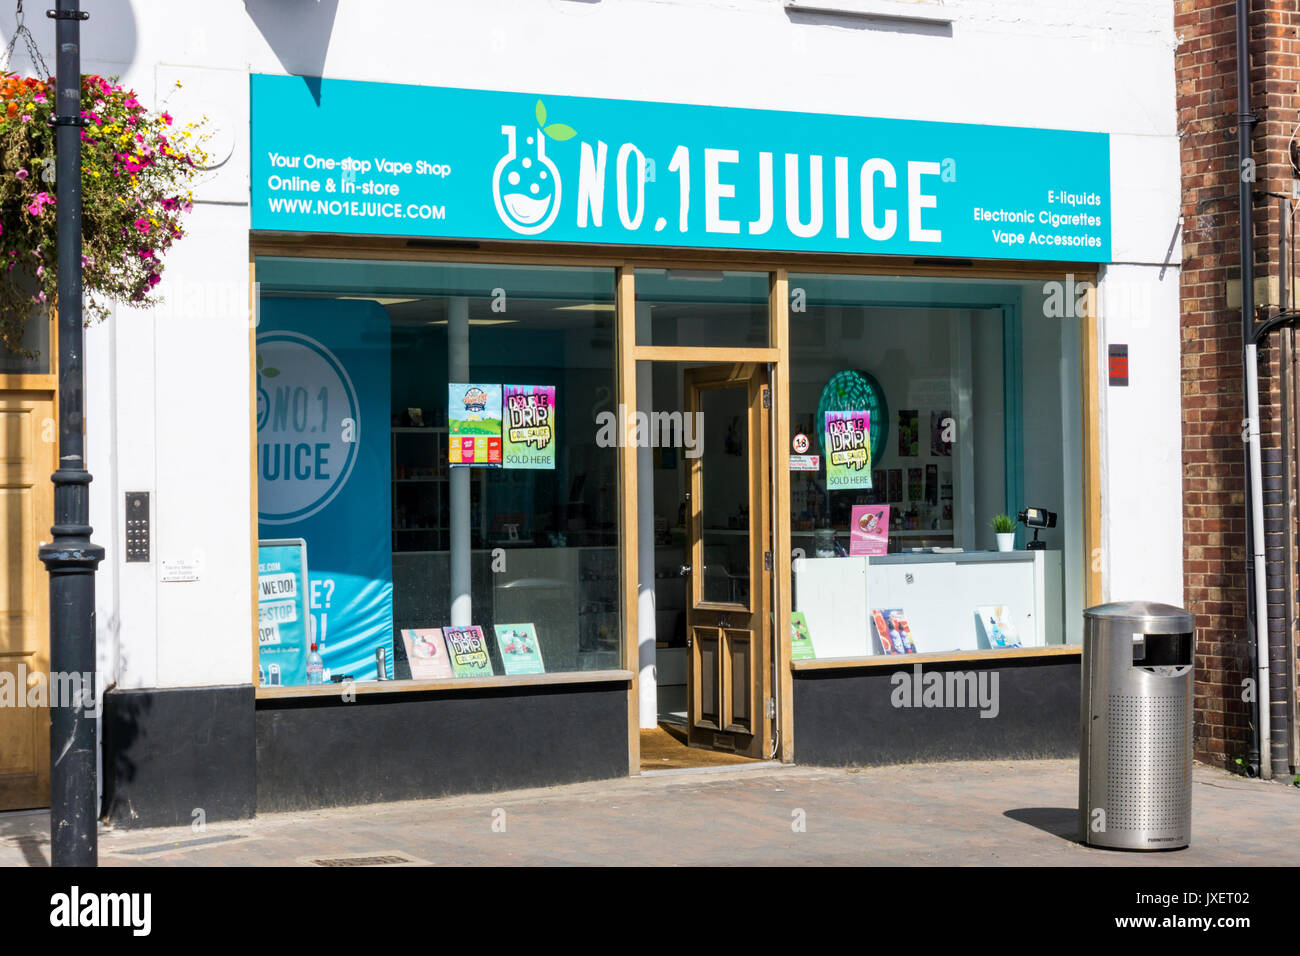 No.1 EJuice vape shop in Orpington High Street - Stock Image